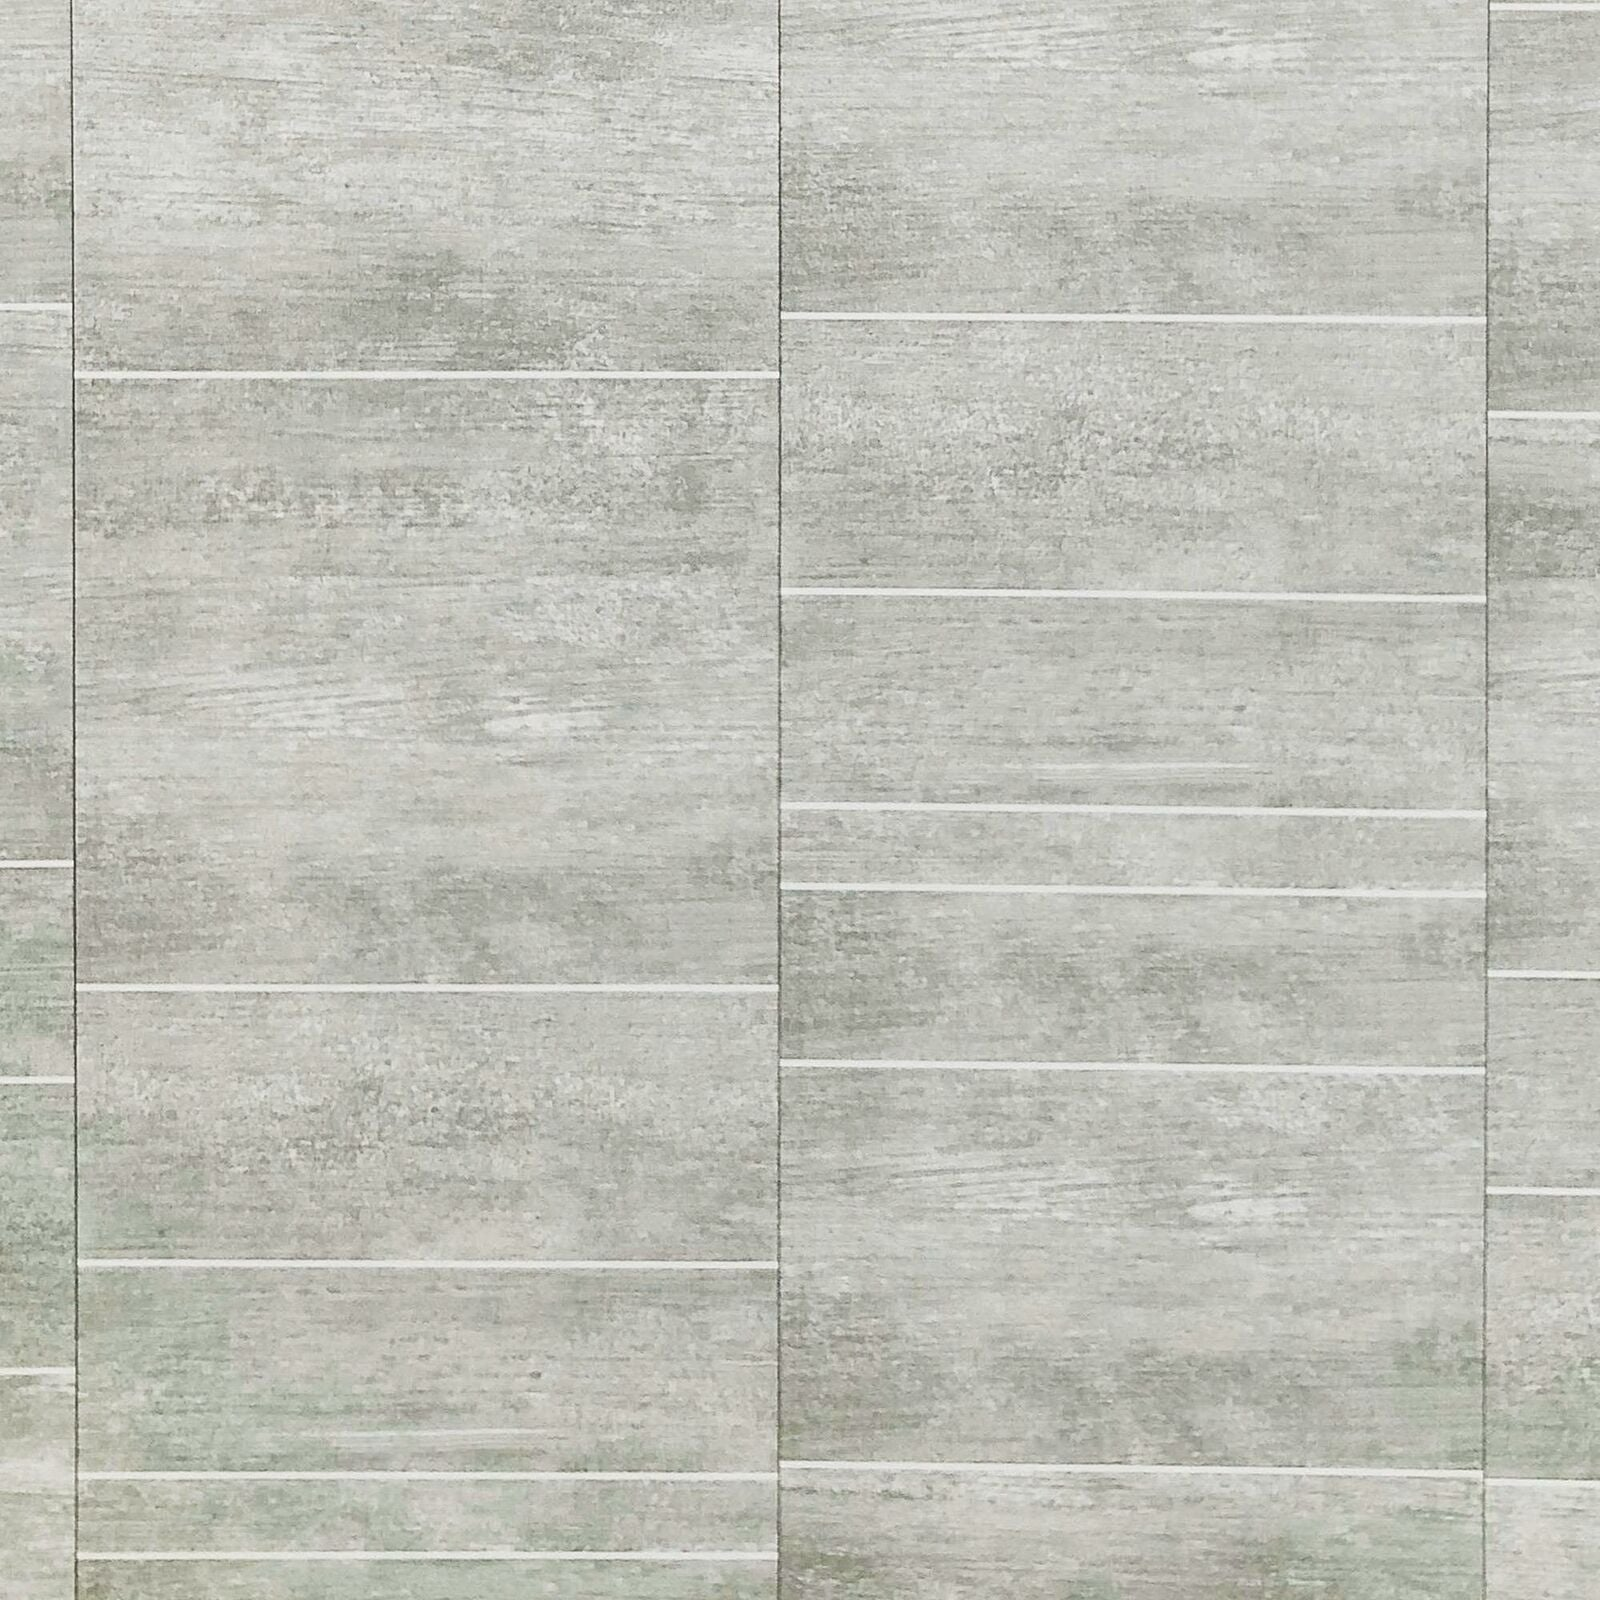 Arian Light Grey Stone Tile 8mm Bathroom Wall Panels Pack Of 4 Claddtech